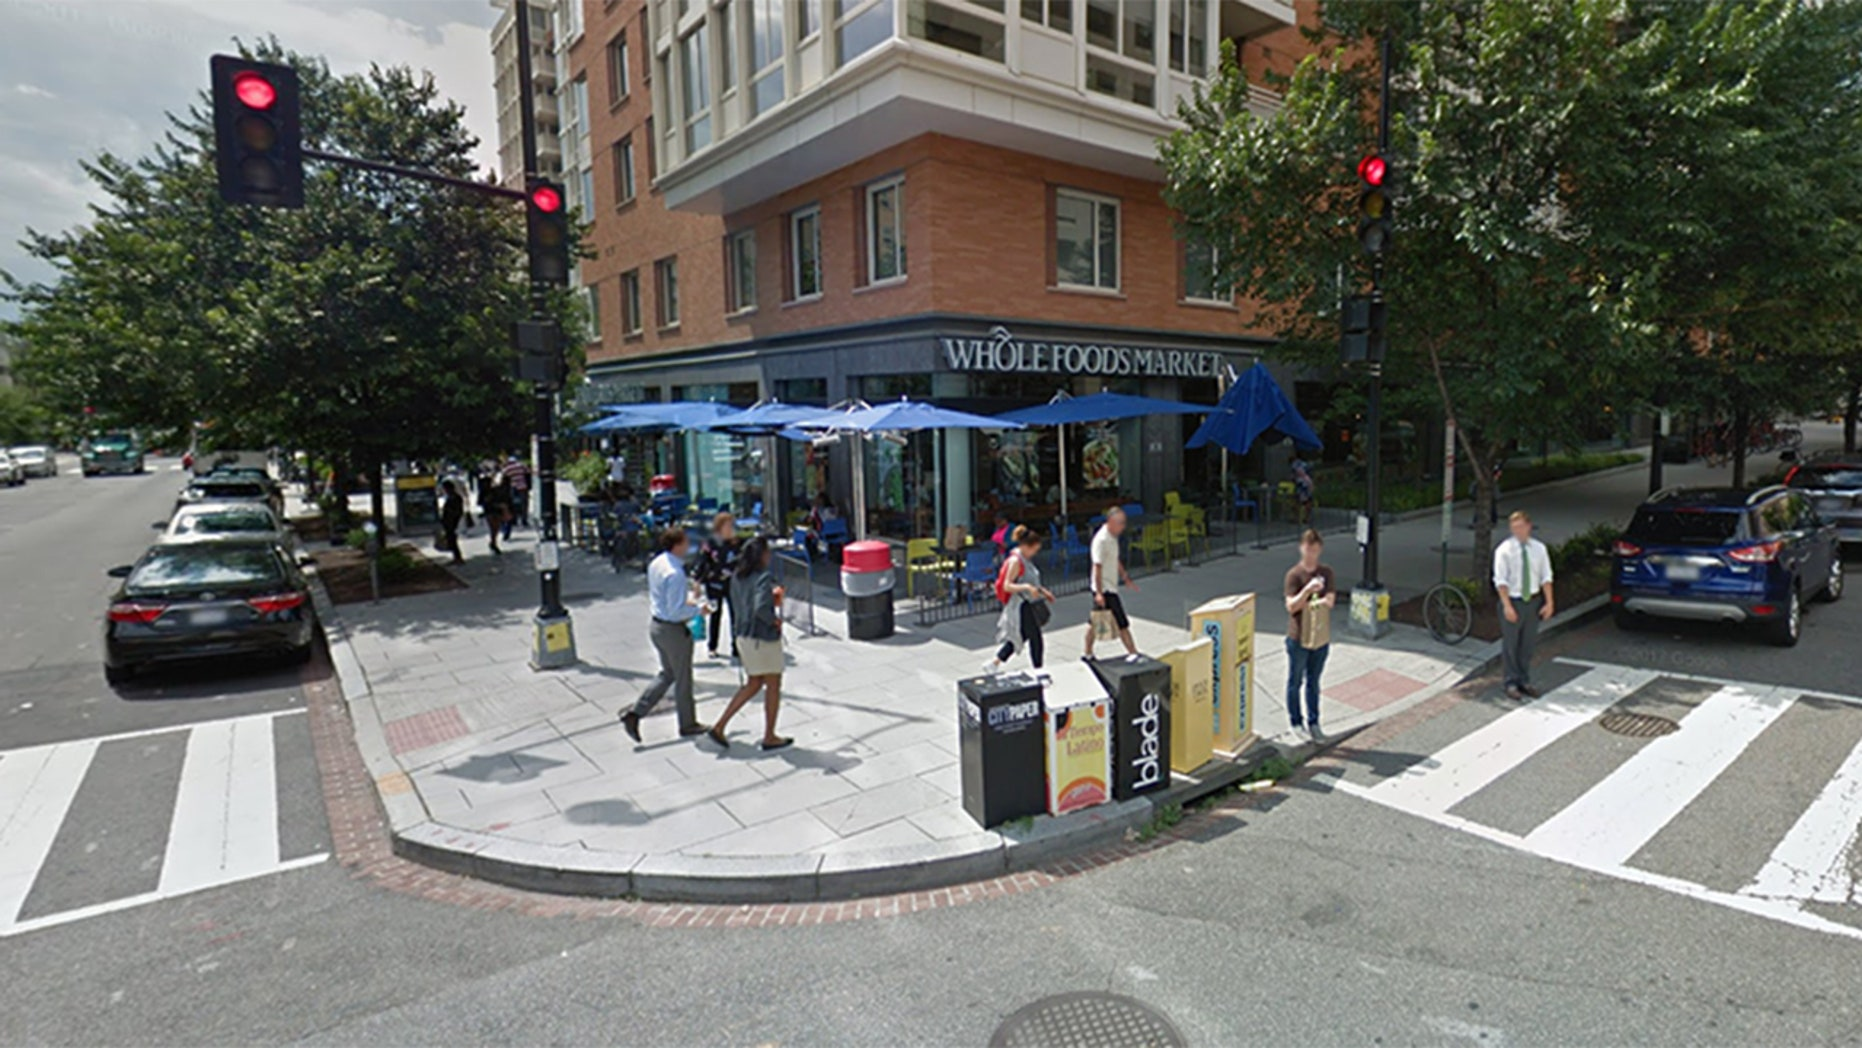 A man allegedly impersonating a cop at a Washington, D.C.-area Whole Foods slapped handcuffs on a real cop trying to arrest him.